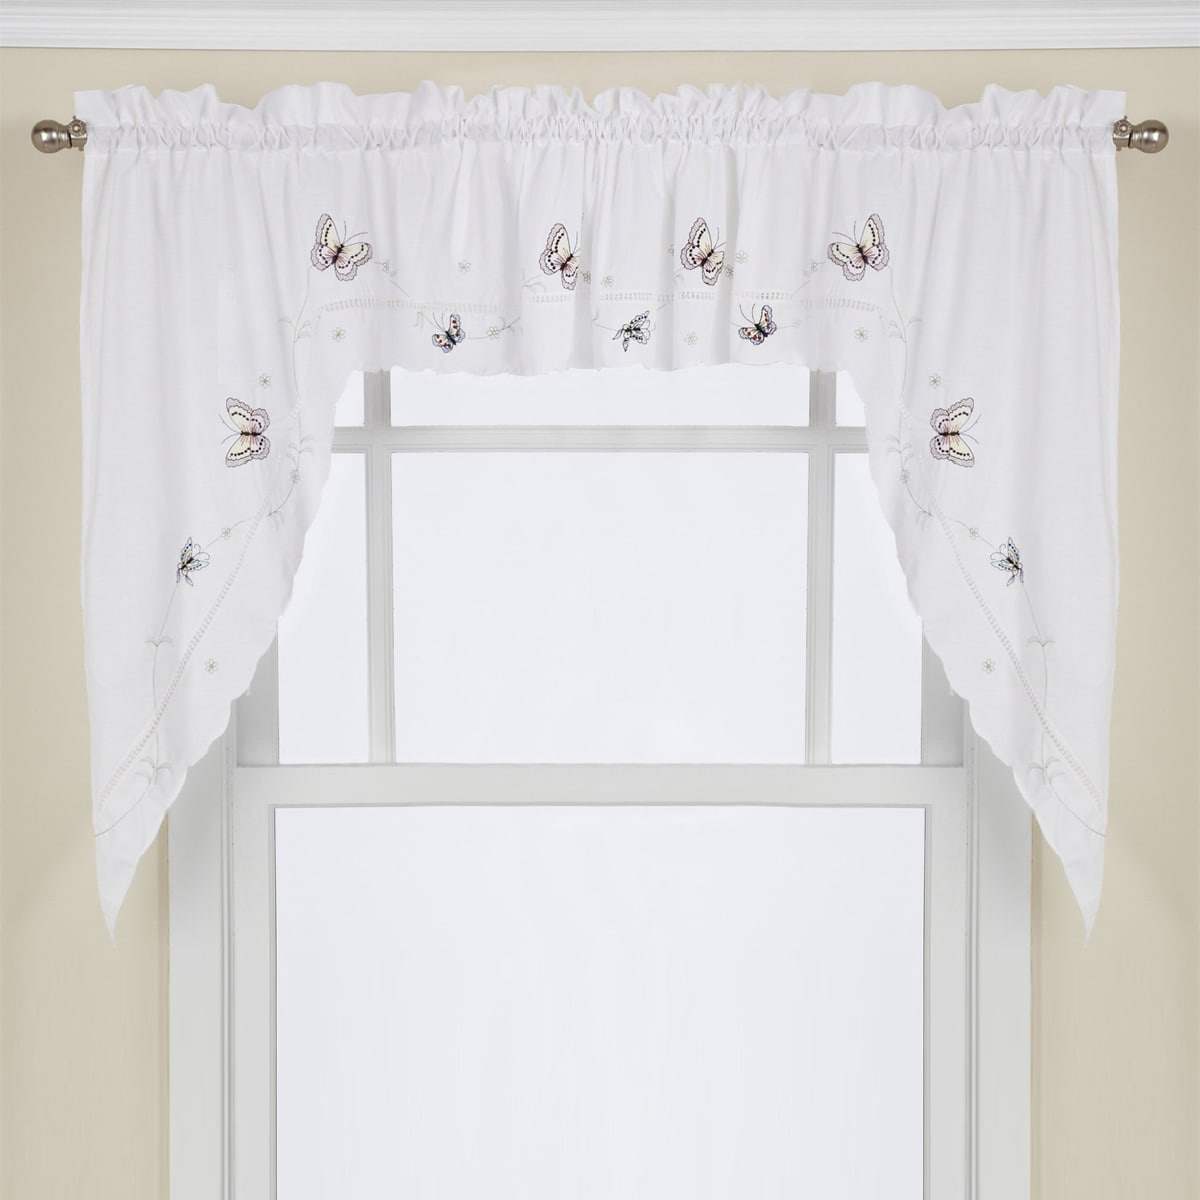 Shop Fluttering Butterfly White Embroidered Tier Swag Or Valance